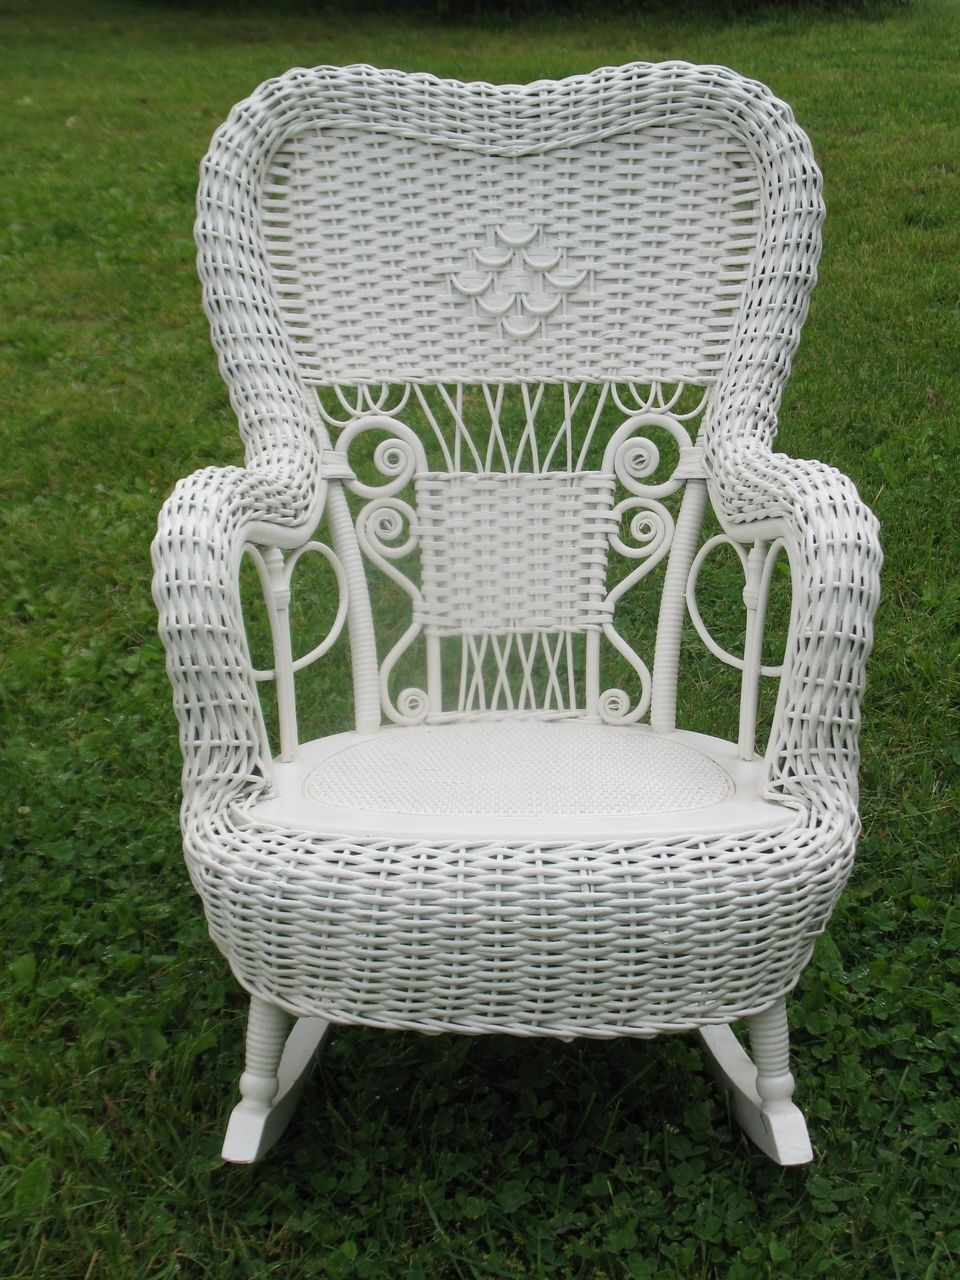 Chair | Wicker Porch Rockers Outdoor Furniture Wooden Garden Rocking Within White Resin Patio Rocking Chairs (View 15 of 15)